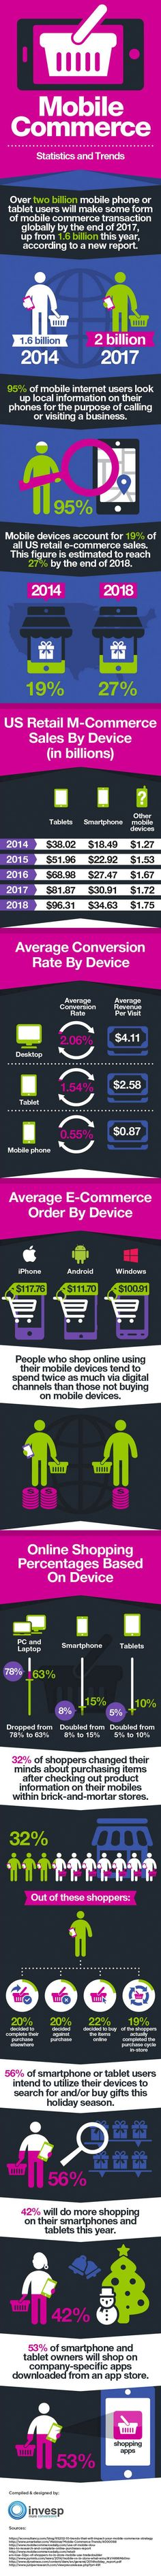 The State of #Mobile #Commerce   http://www.getelastic.com/mobile-commerce-infographic/